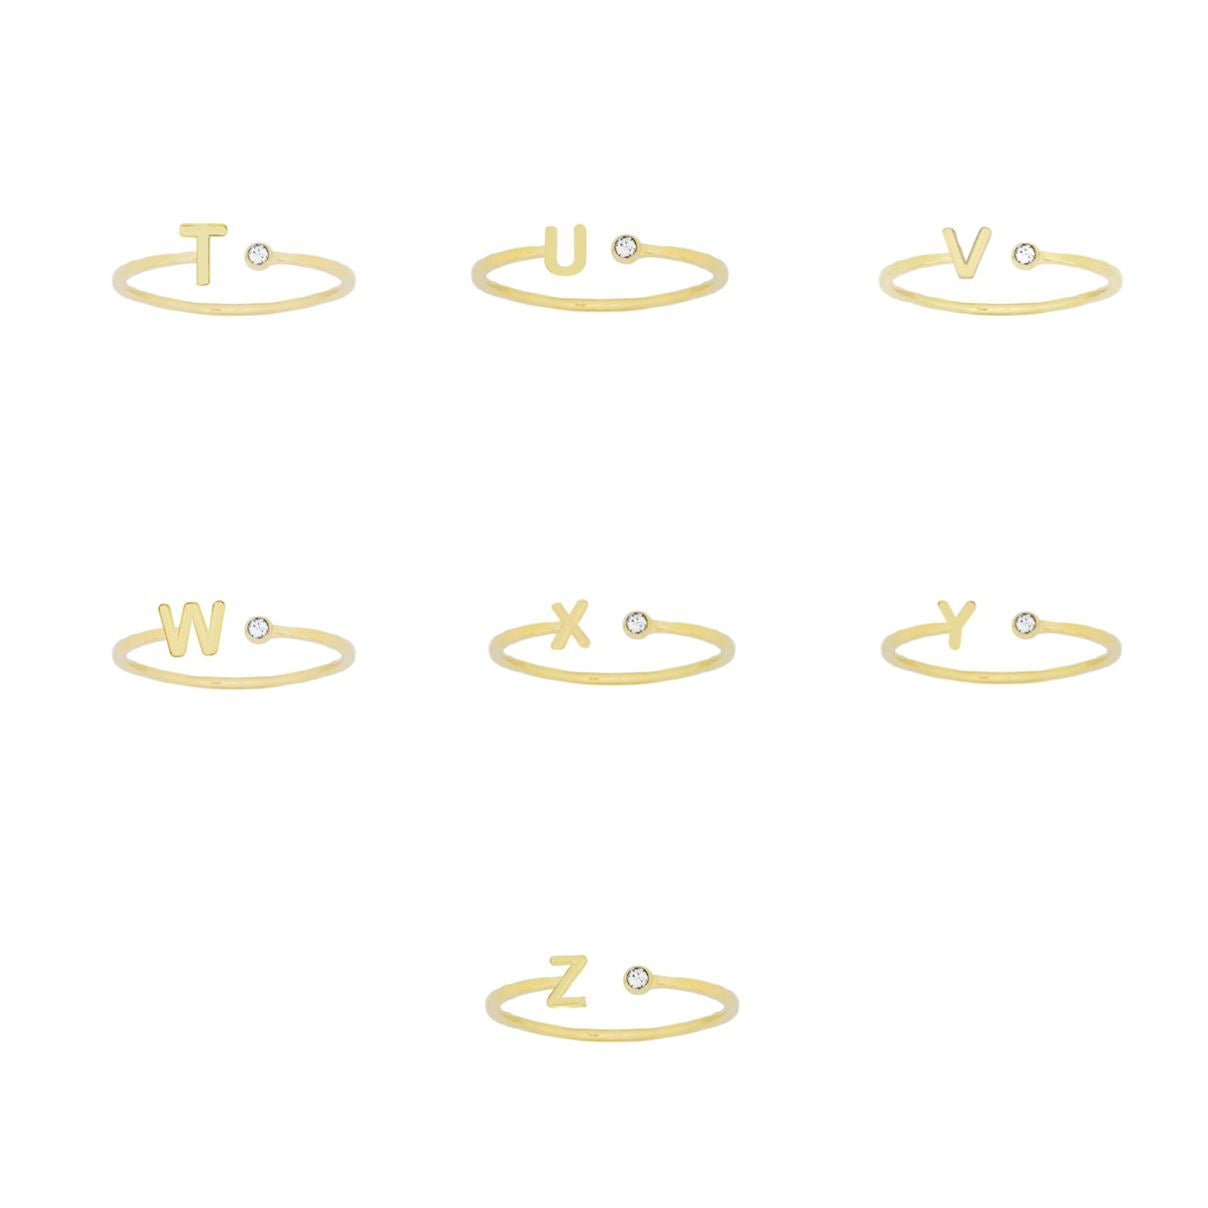 Gold dainty Initial Rings on a white background, letters shown T, U, V, W, X, Y, Z